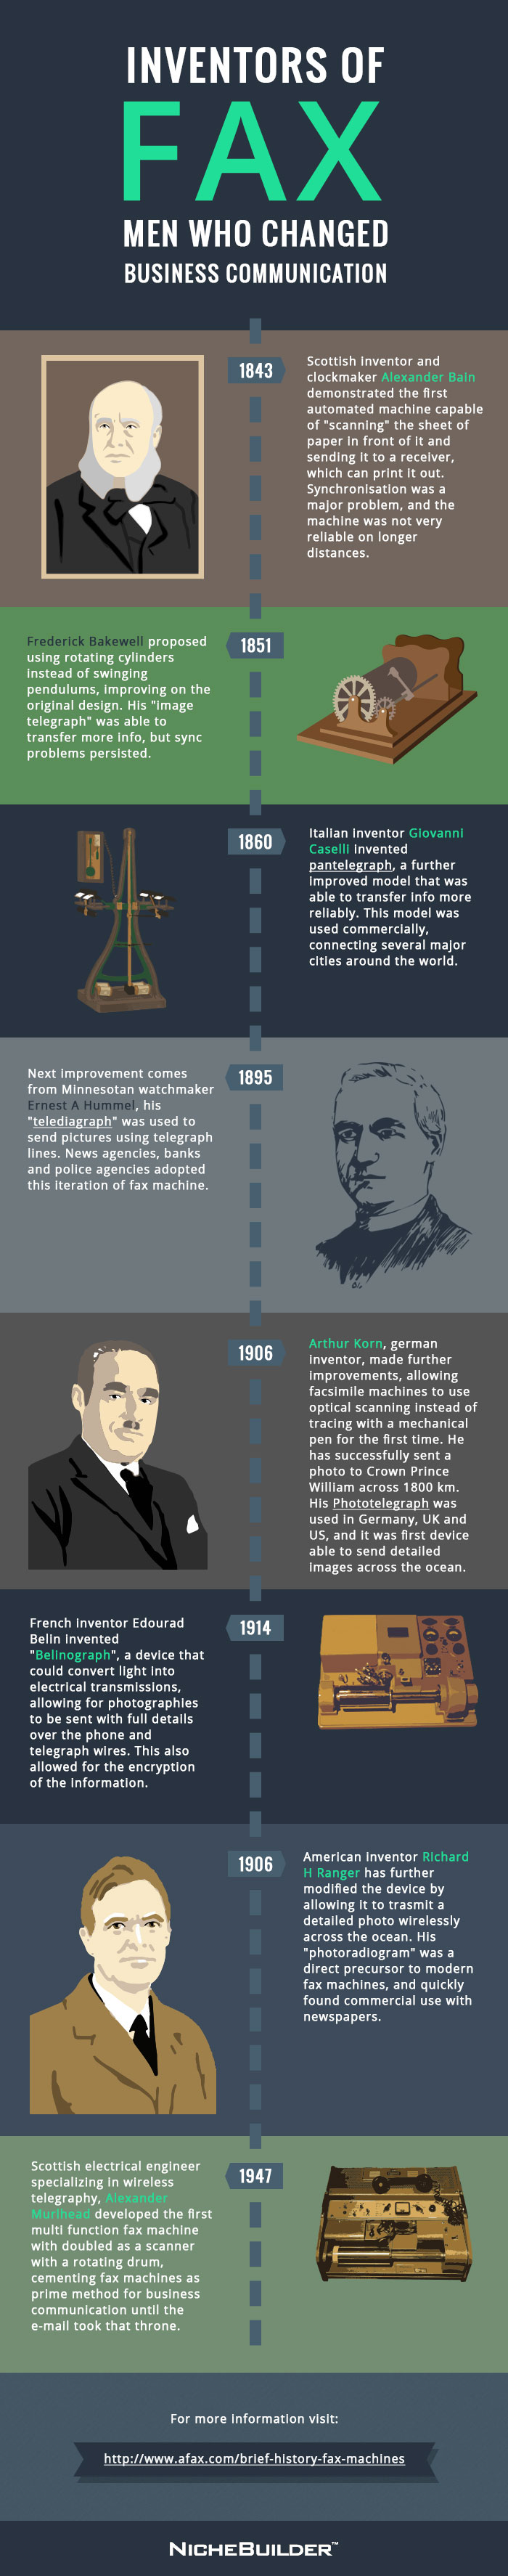 Fax Inventors and History of Fax Infographic